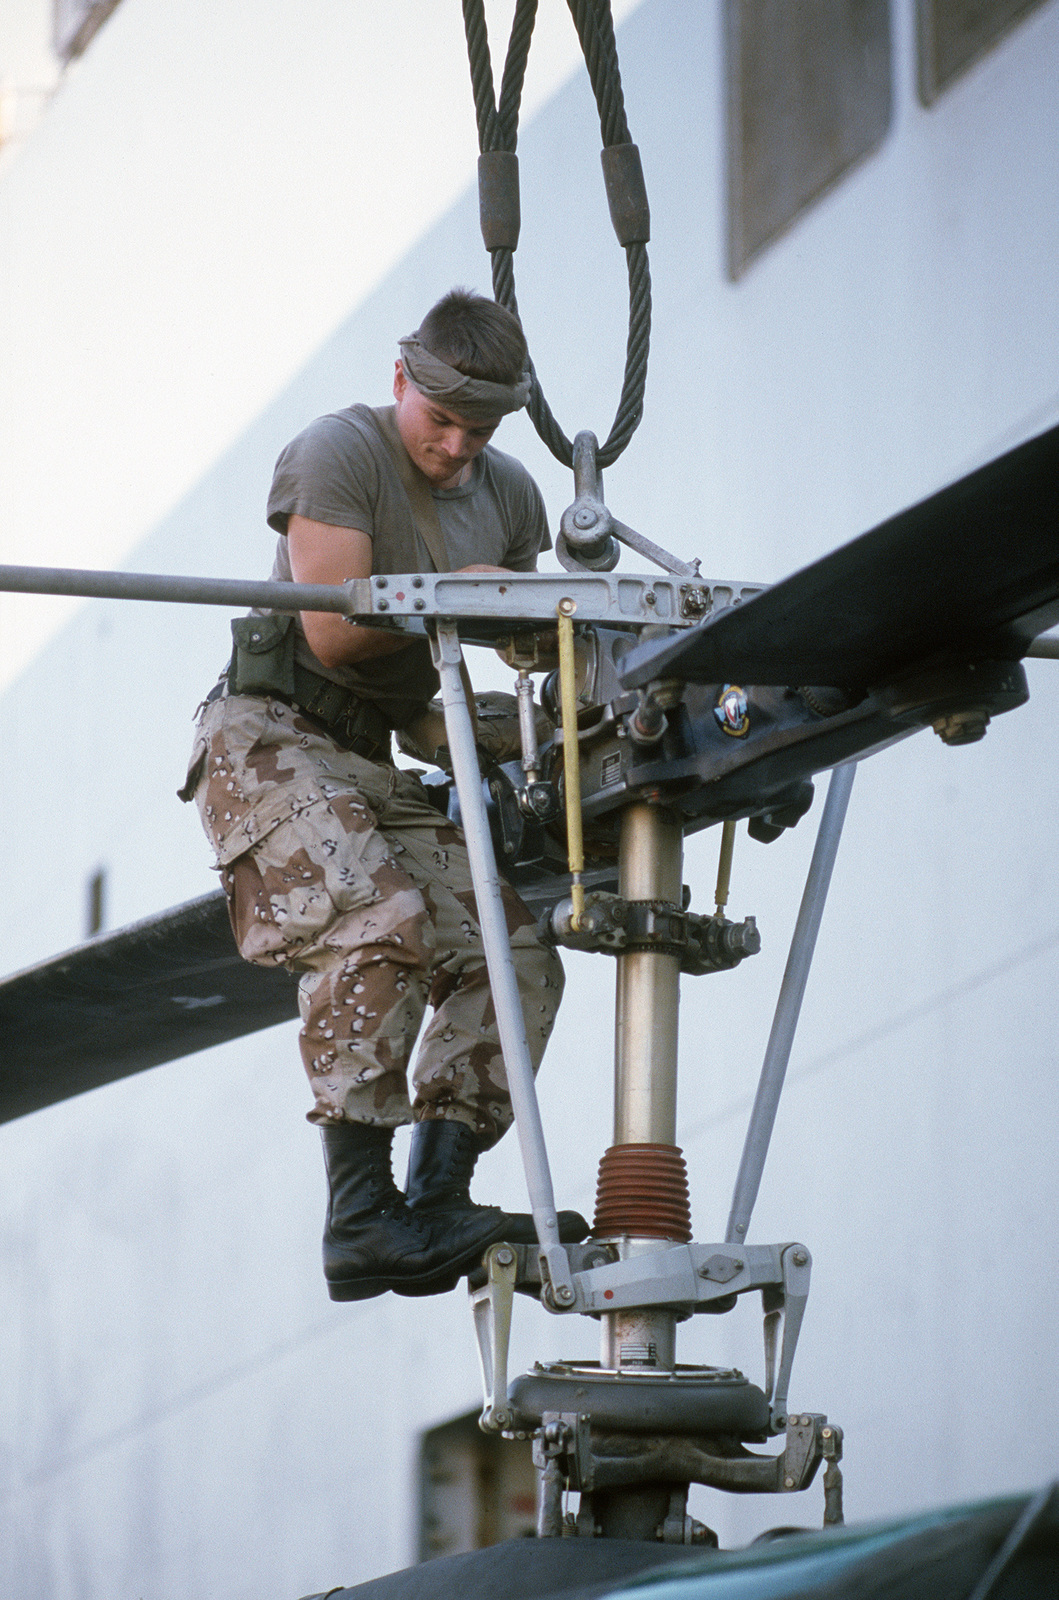 a technician checks the rotor on a helicopter that has jsut been off